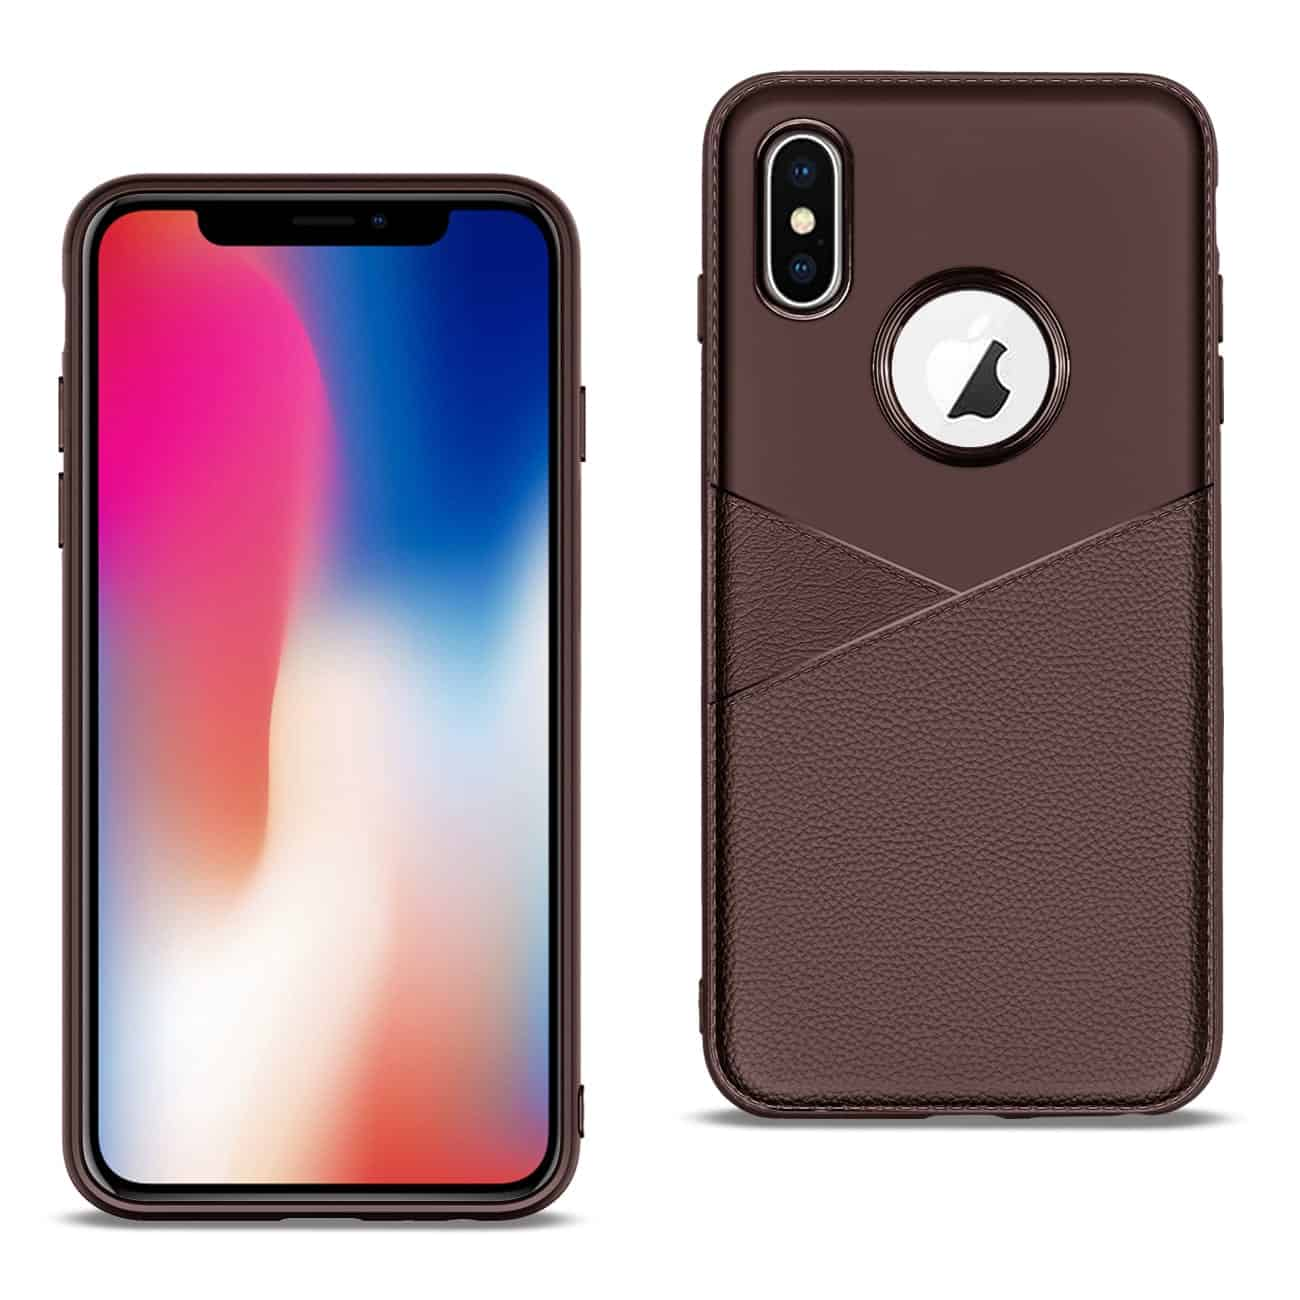 Apple iPhone X Good quality phone case in Brown